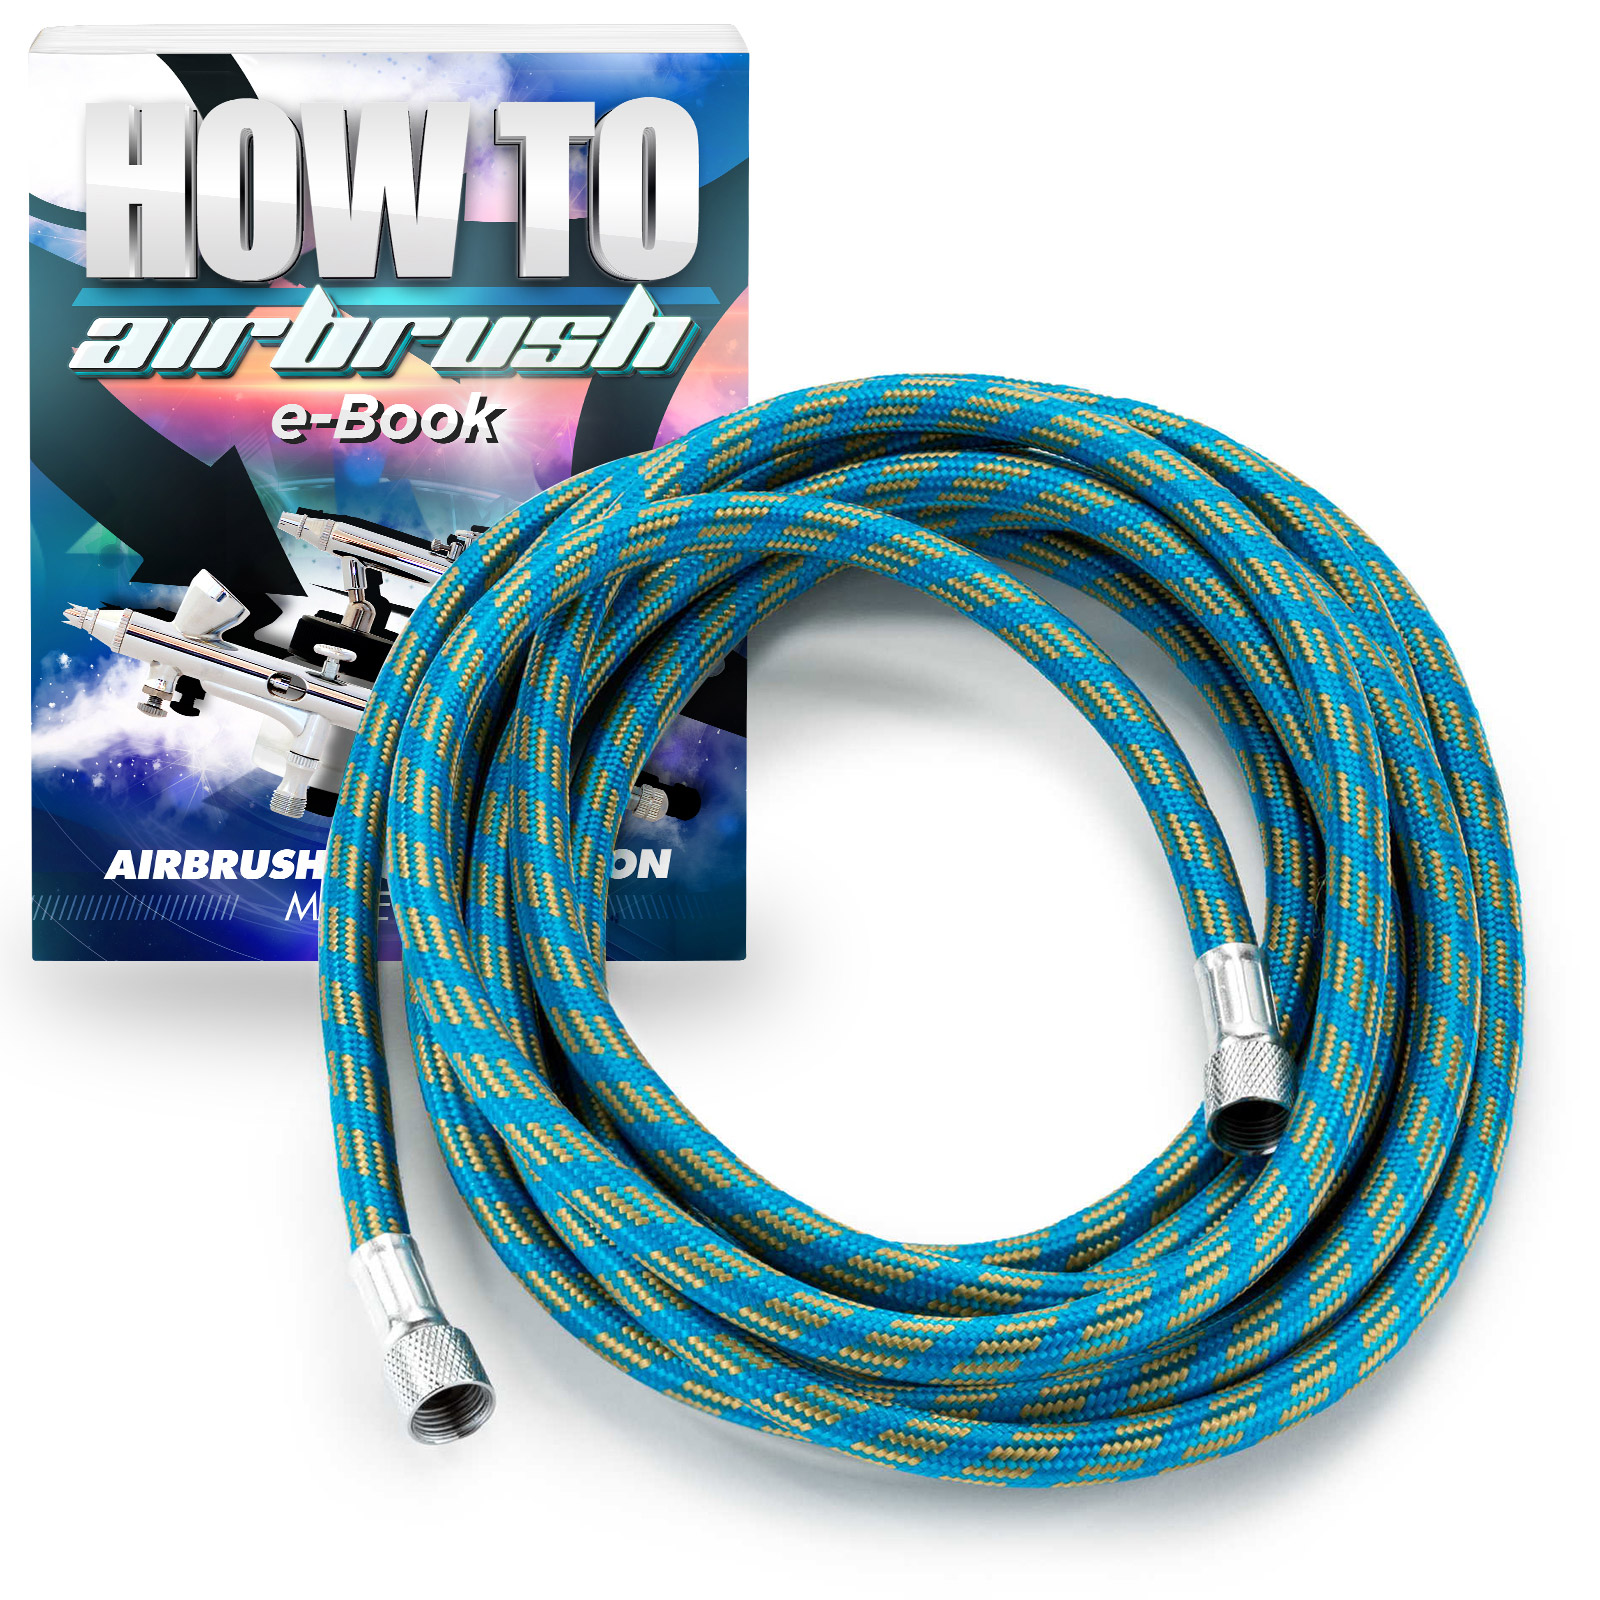 PointZero Braided Airbrush Air Hose 1/8